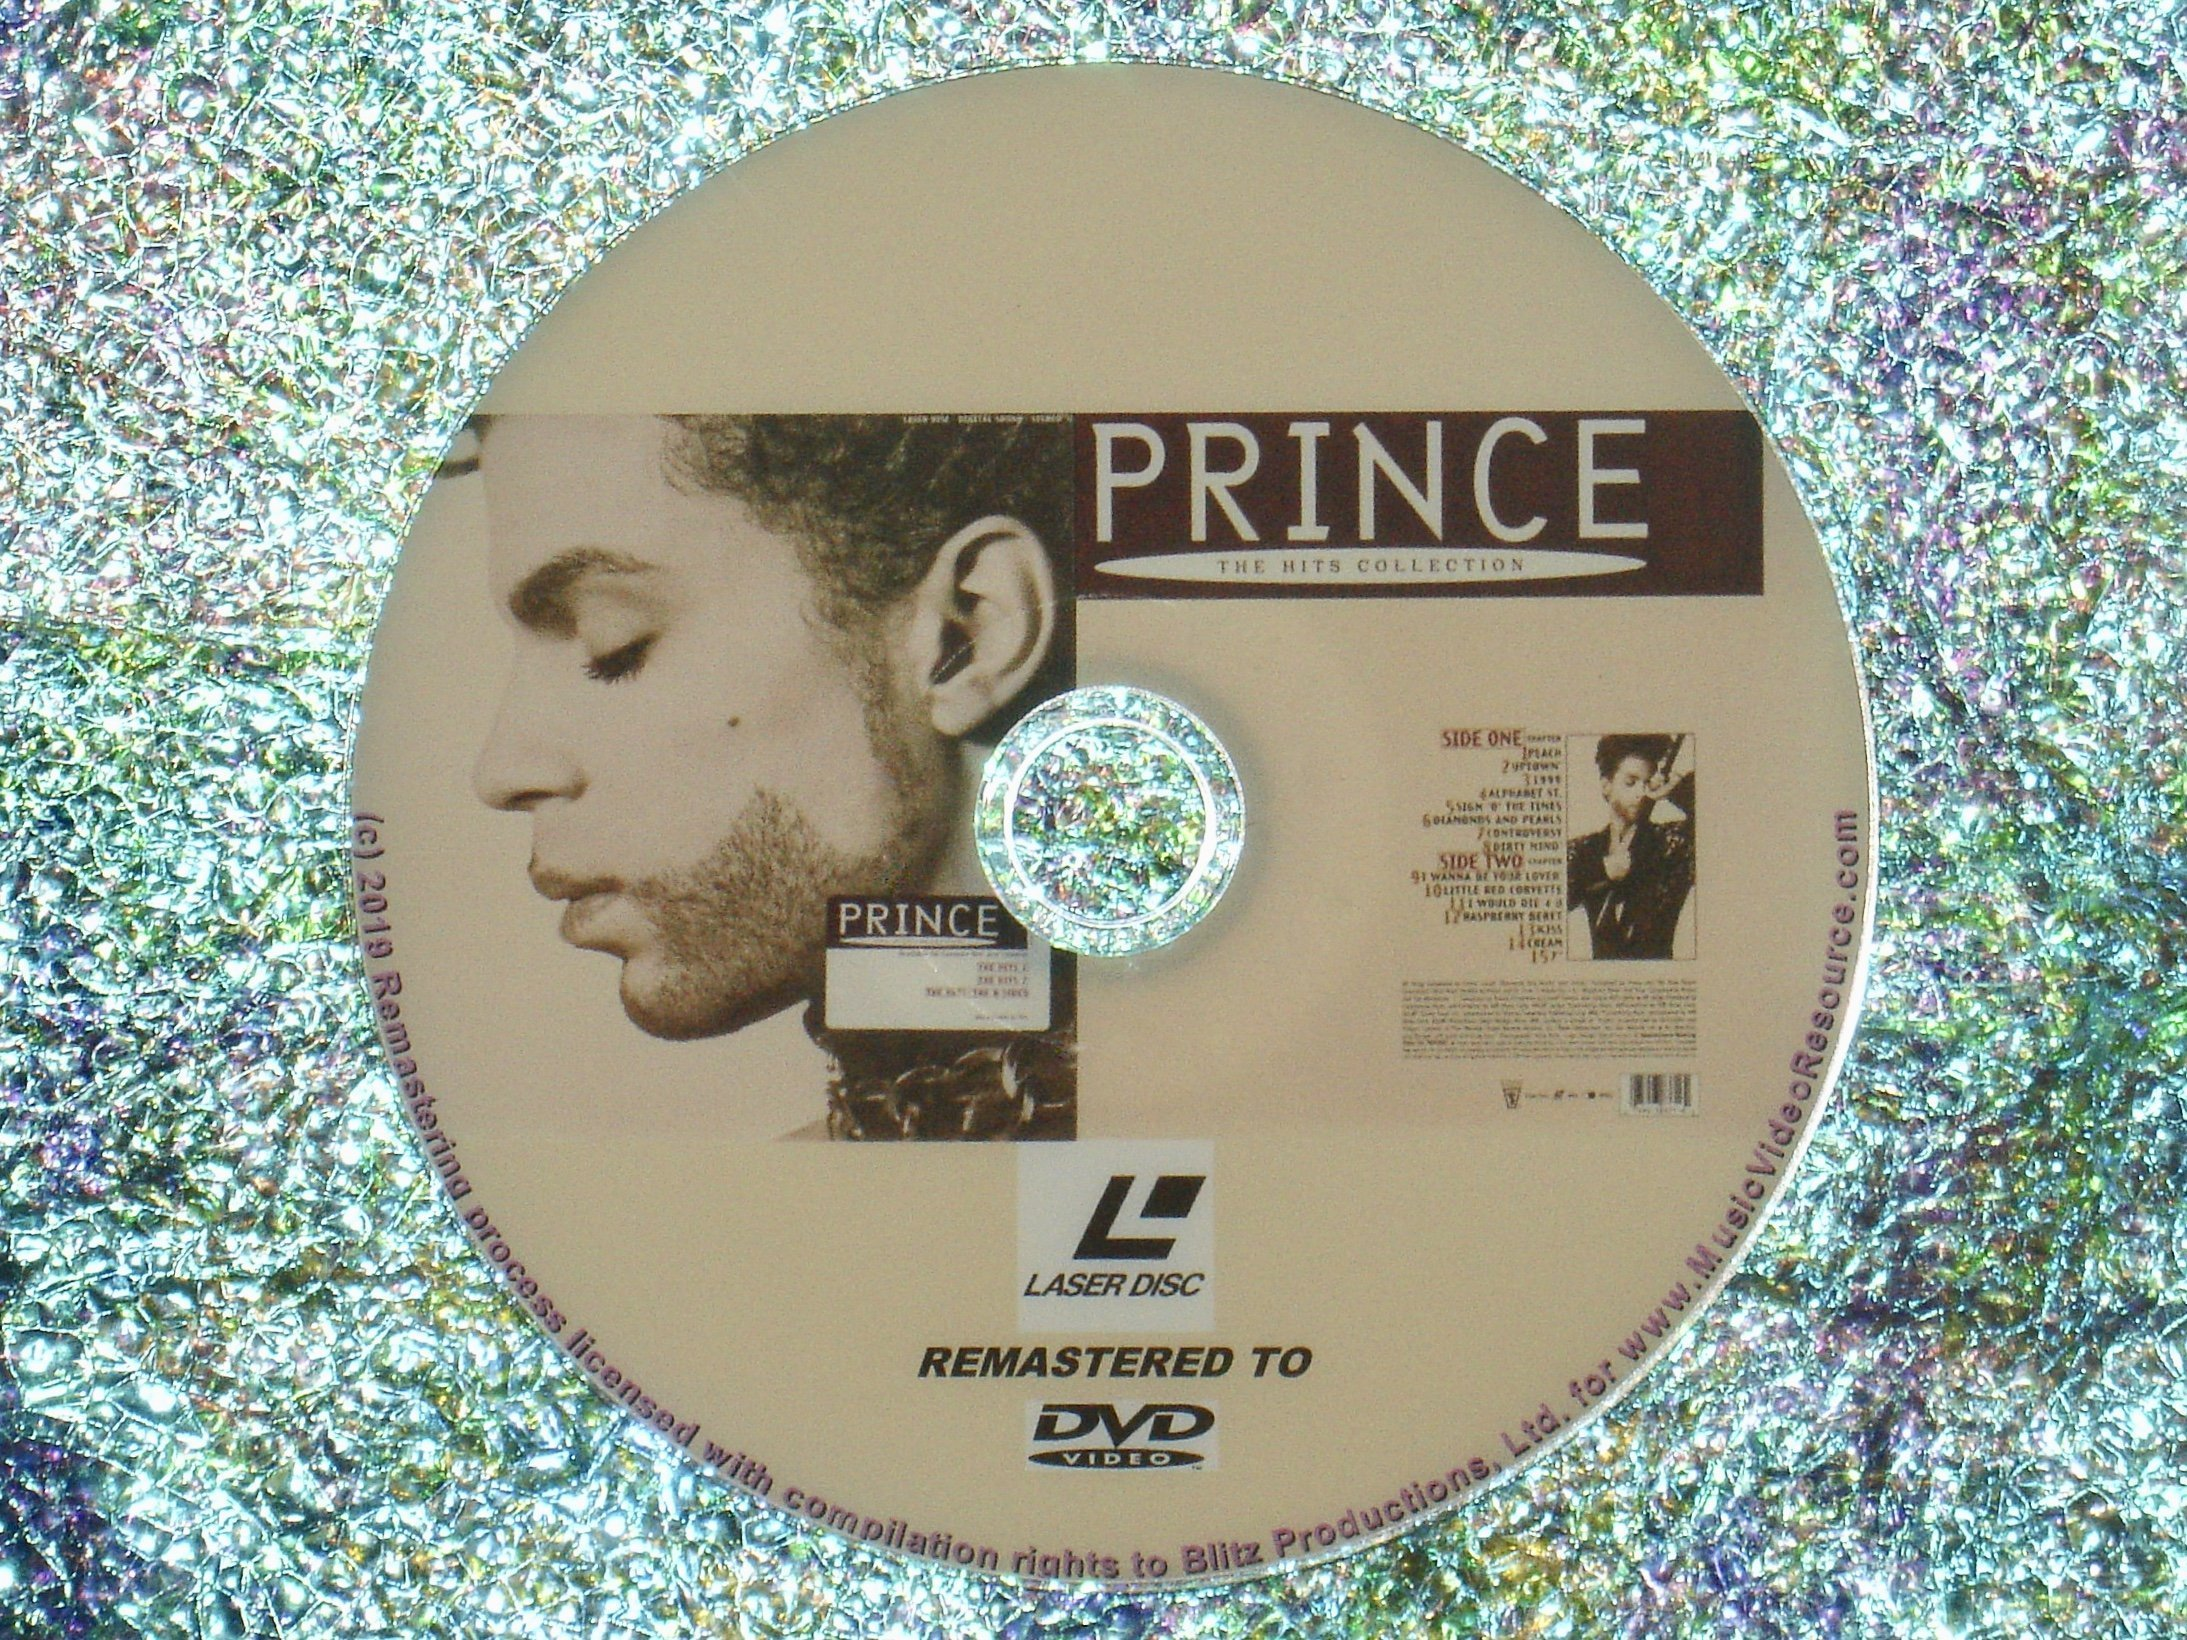 PRINCE The Hits Collection (1993) (Remaster from LaserDisc to DVD)